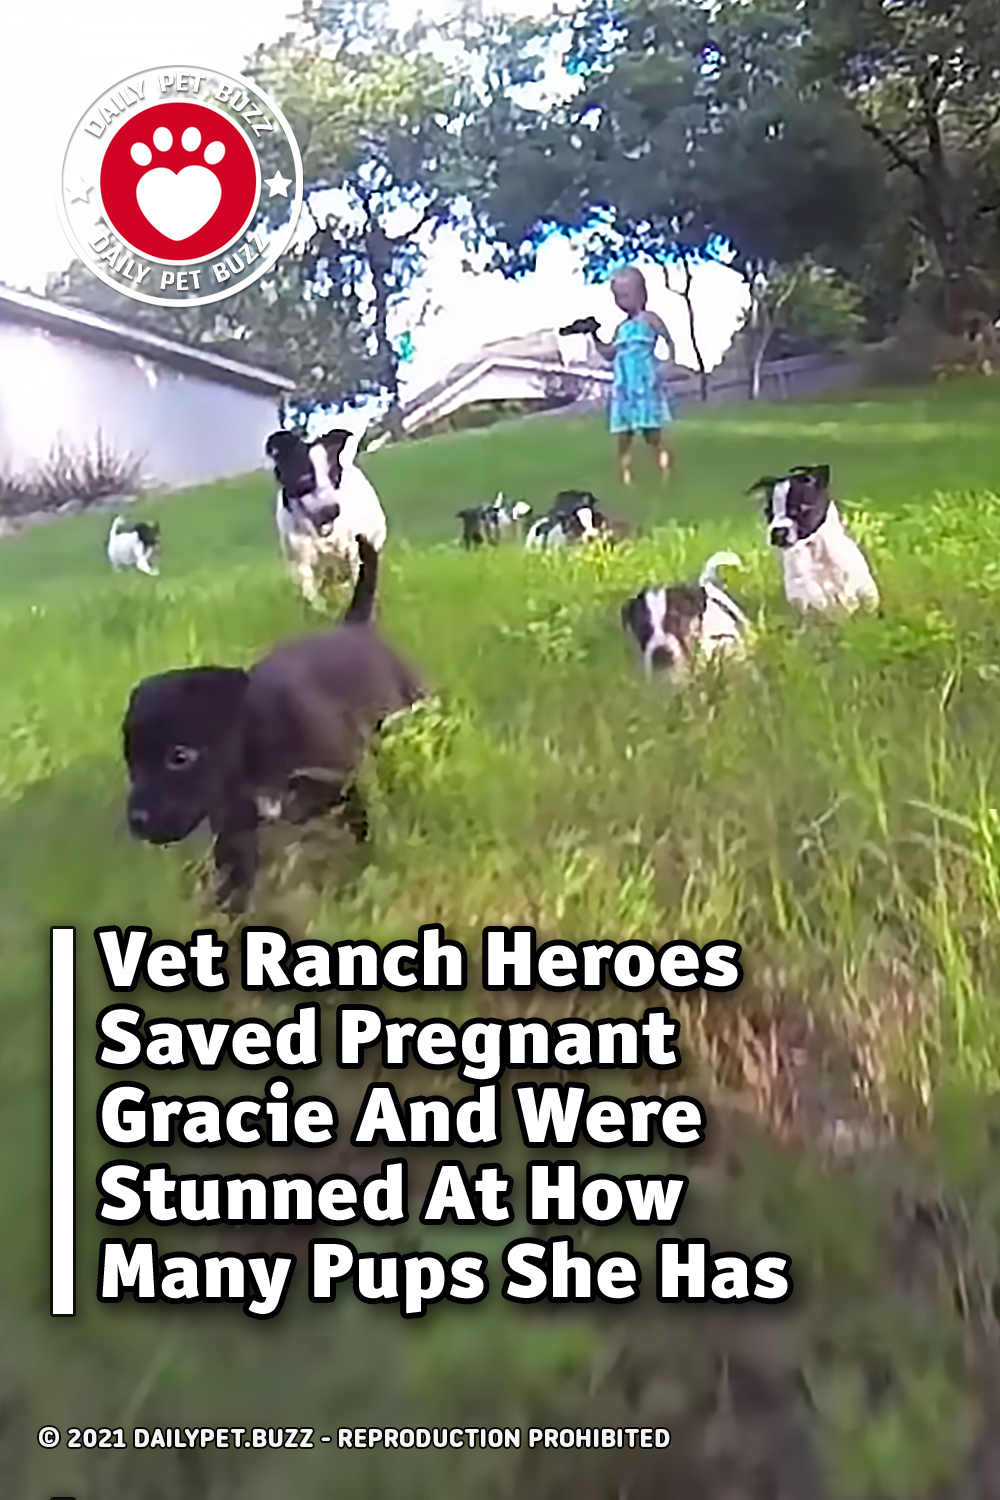 Vet Ranch Heroes Saved Pregnant Gracie And Were Stunned At How Many Pups She Has